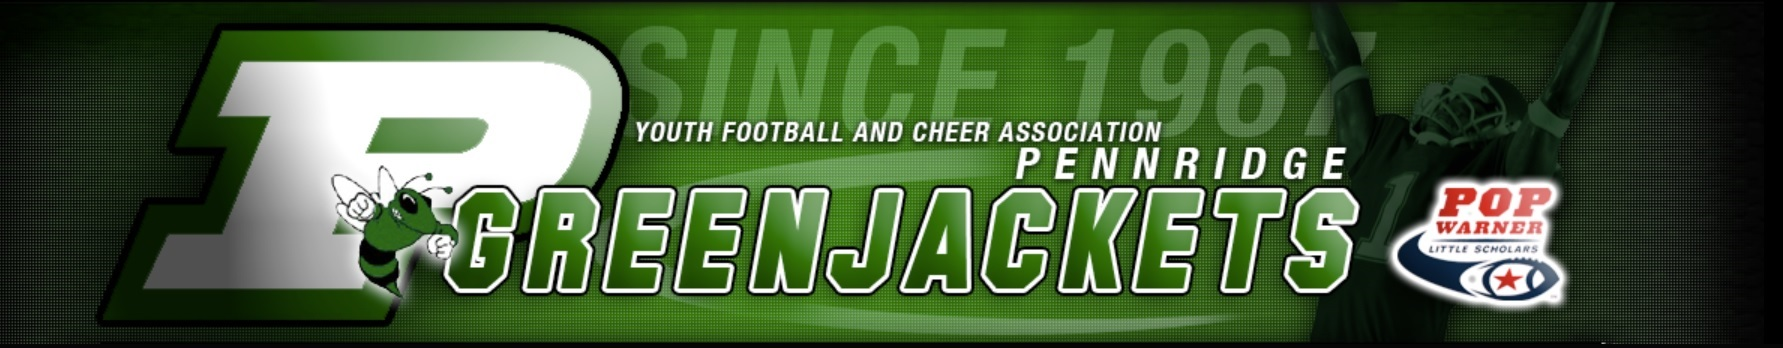 Greenjackets_banner